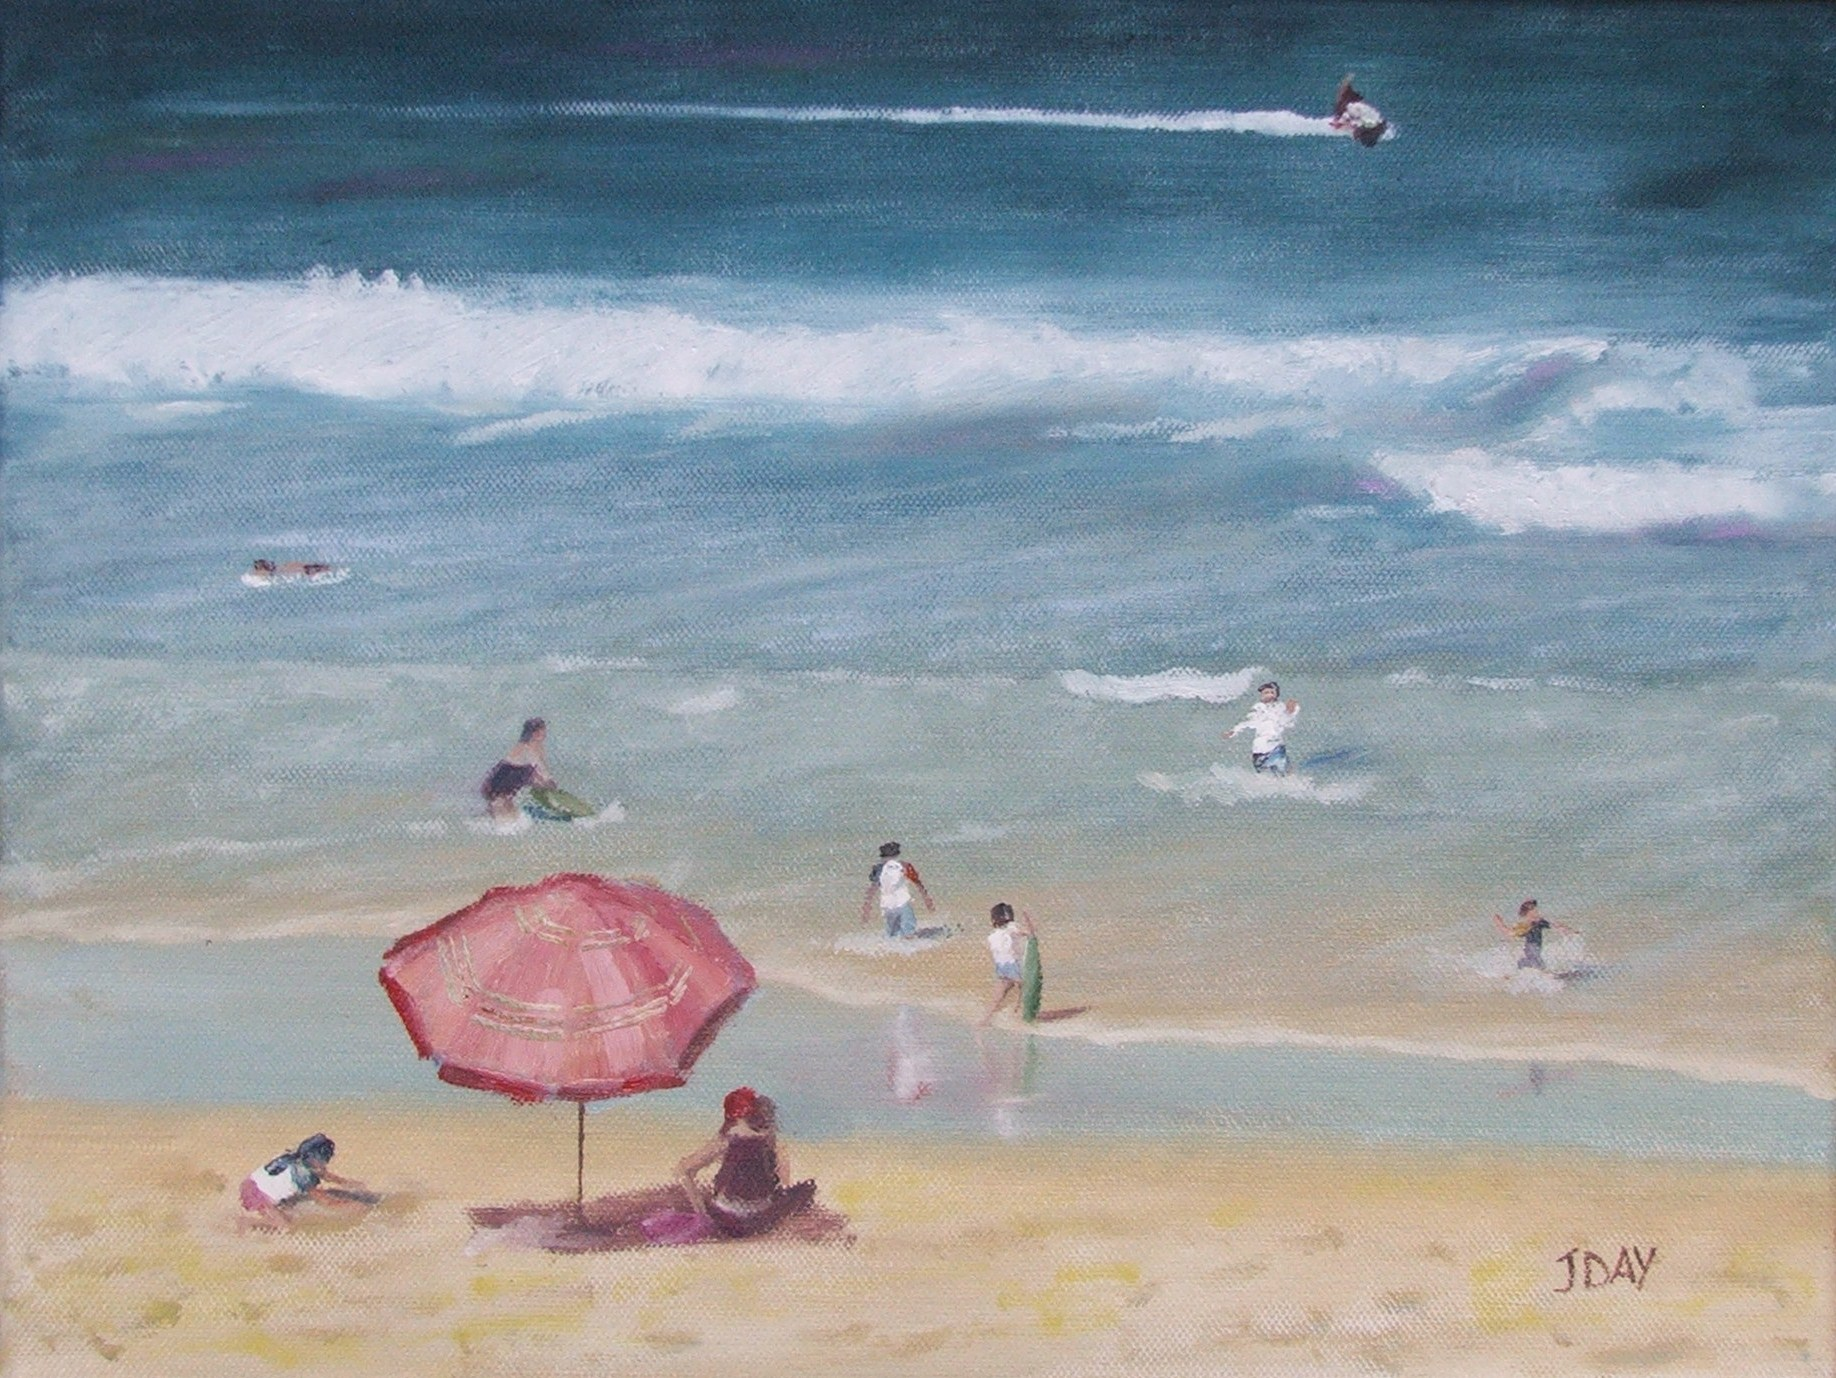 Genesis heat-set Oil painting 'Back At The Umbrella', inspired by a beach scene at the Gold Coast